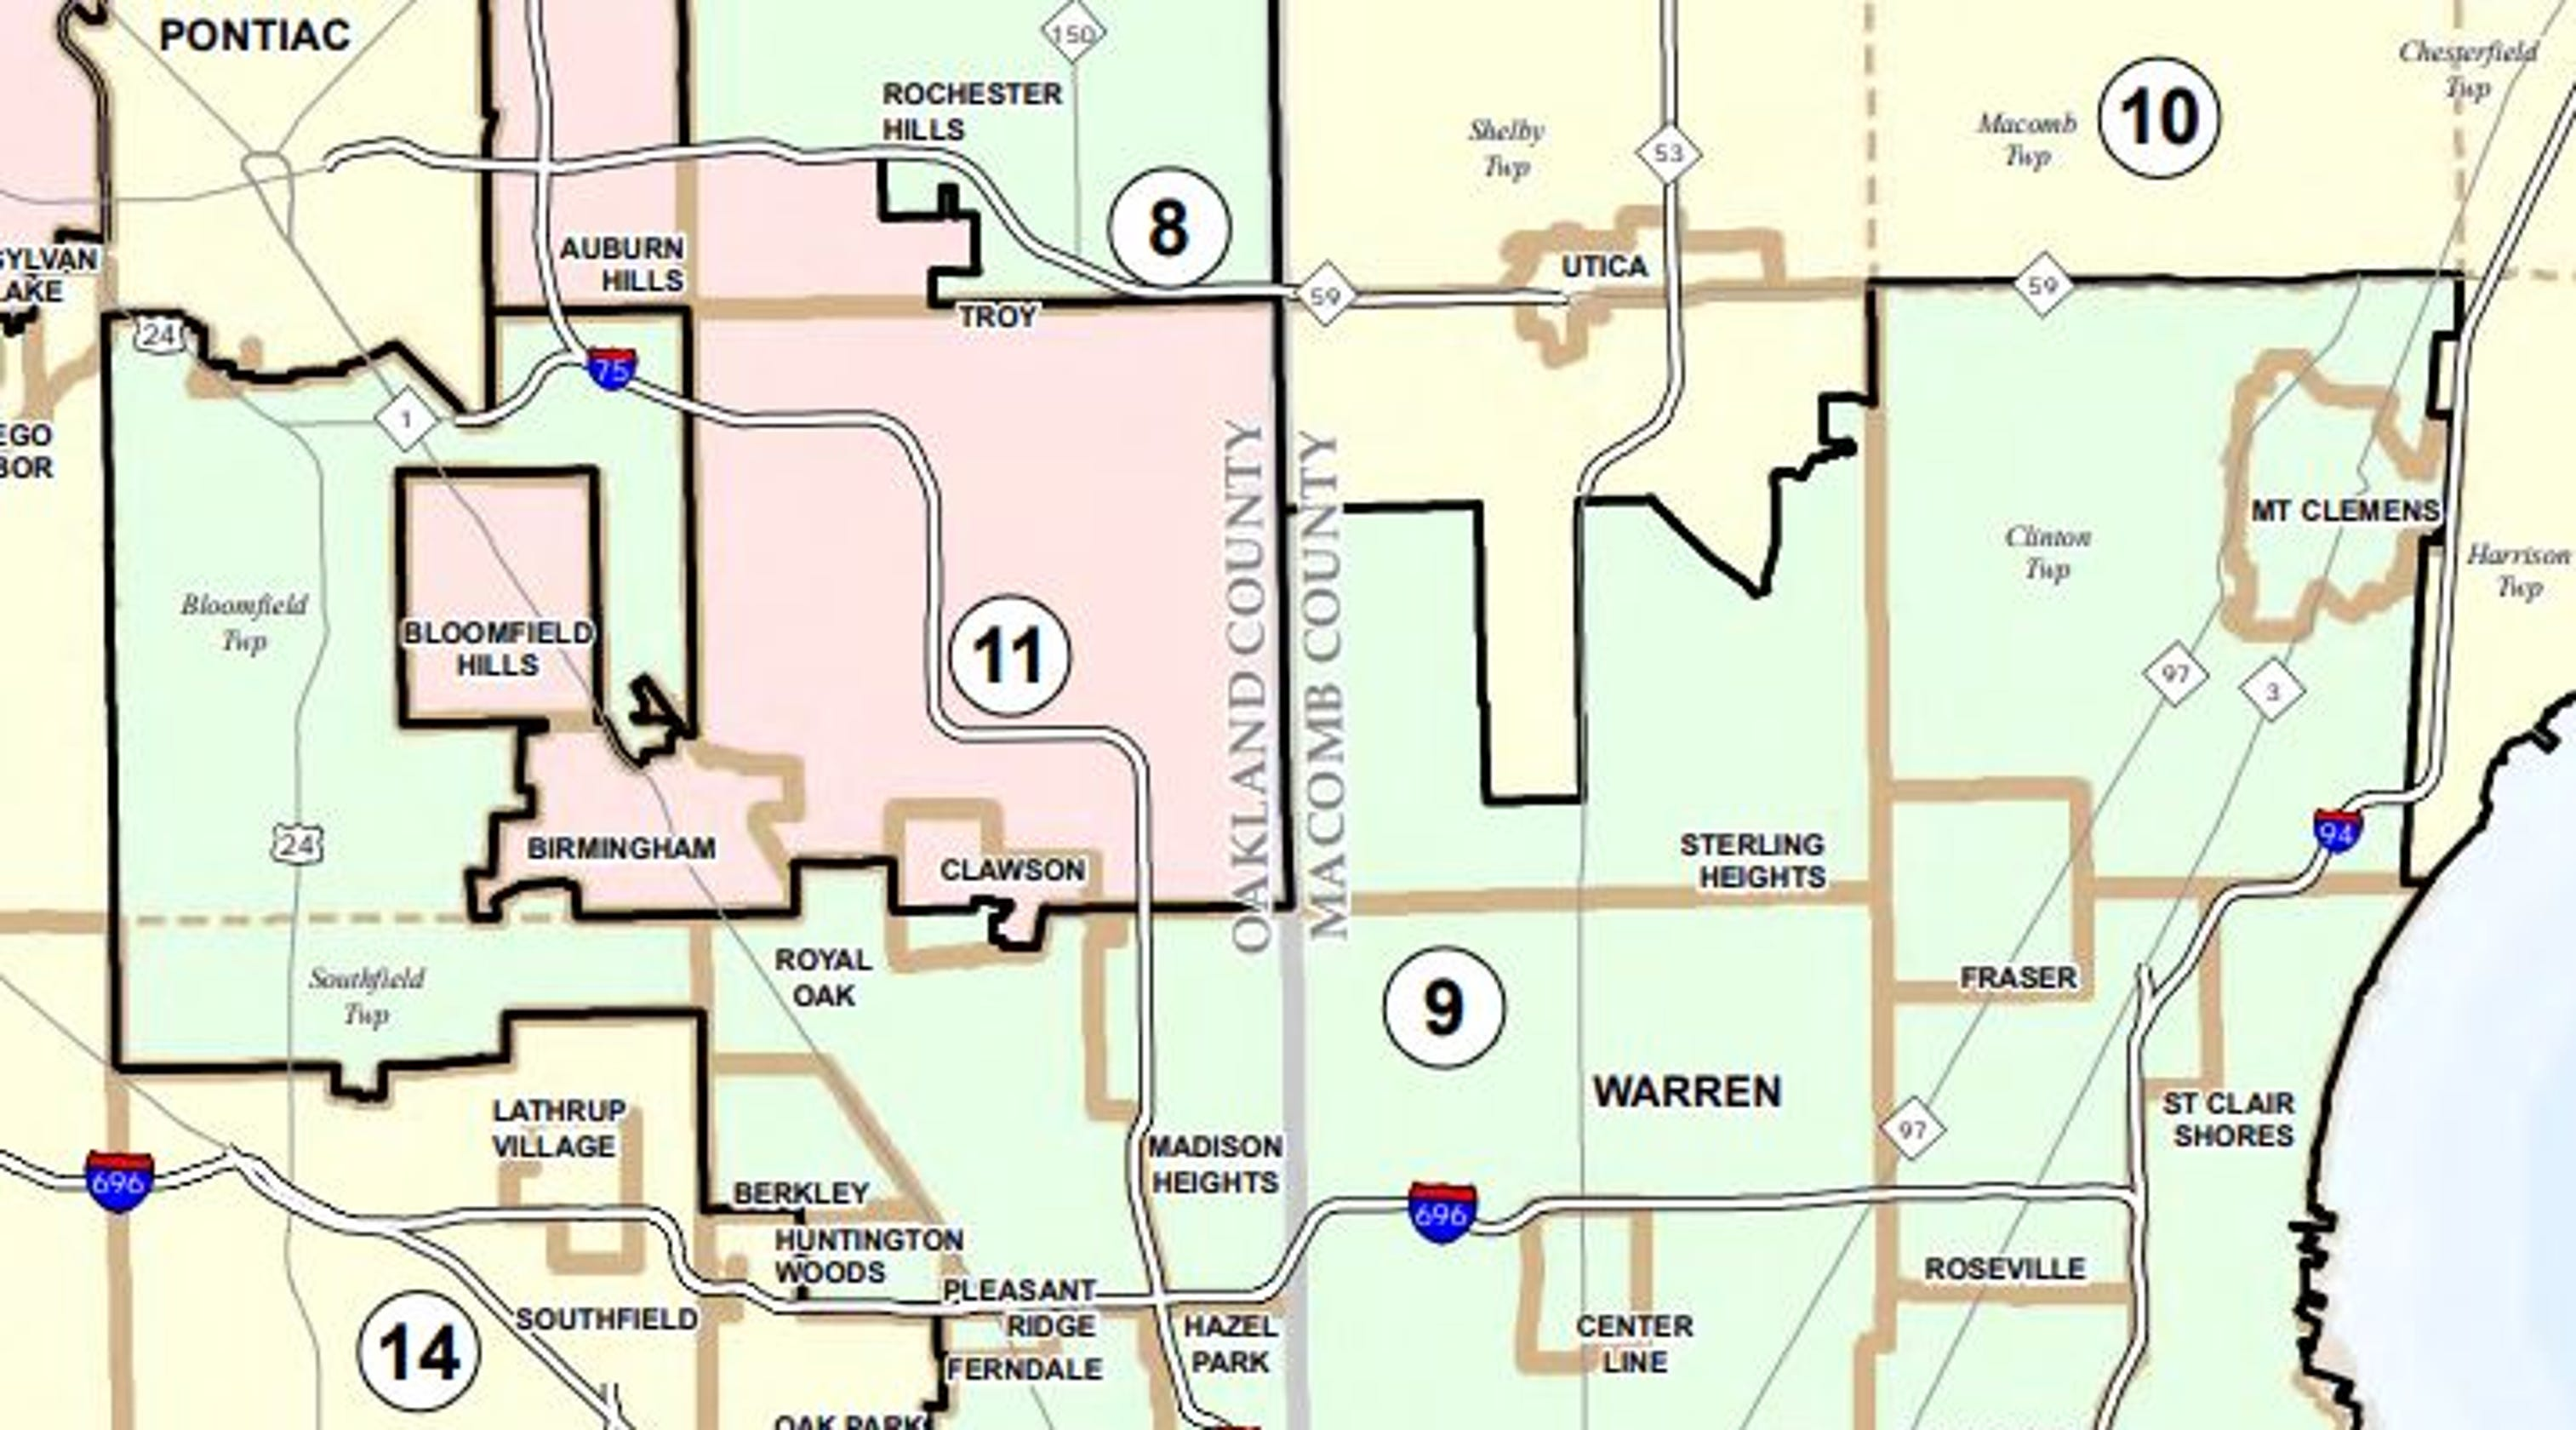 GOP pressure shaped Michigan district maps, court records show